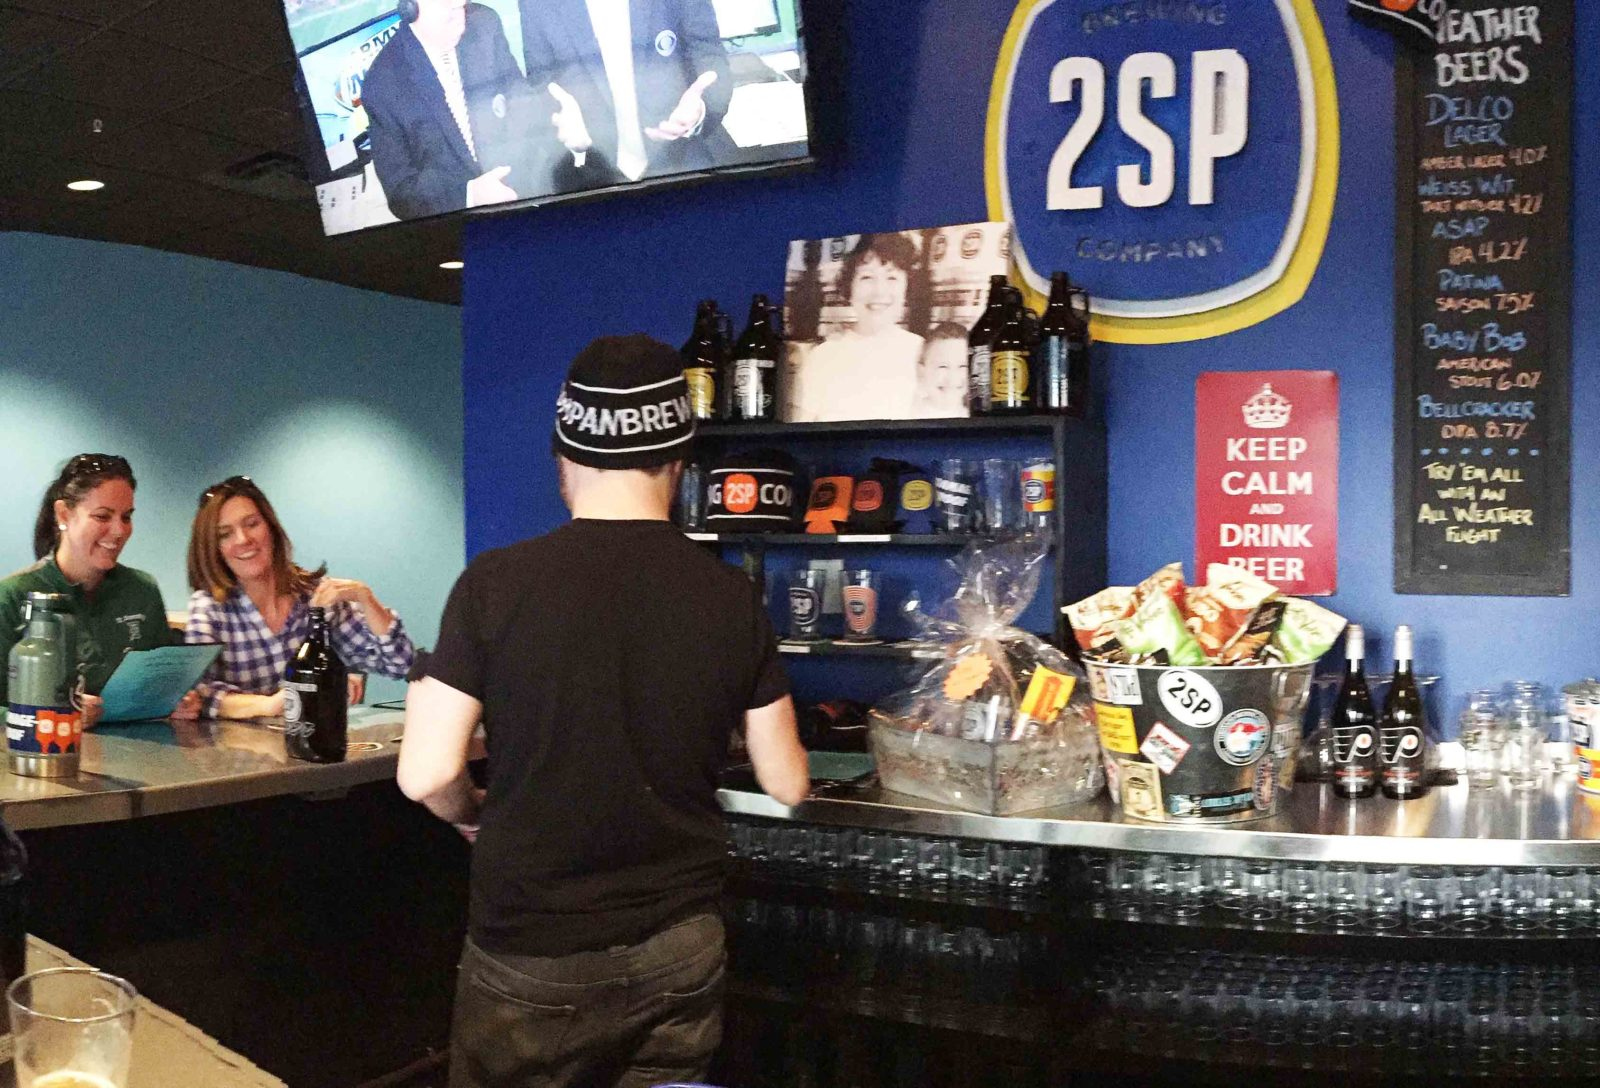 262. 2SP Brewing, Aston PA, 2015